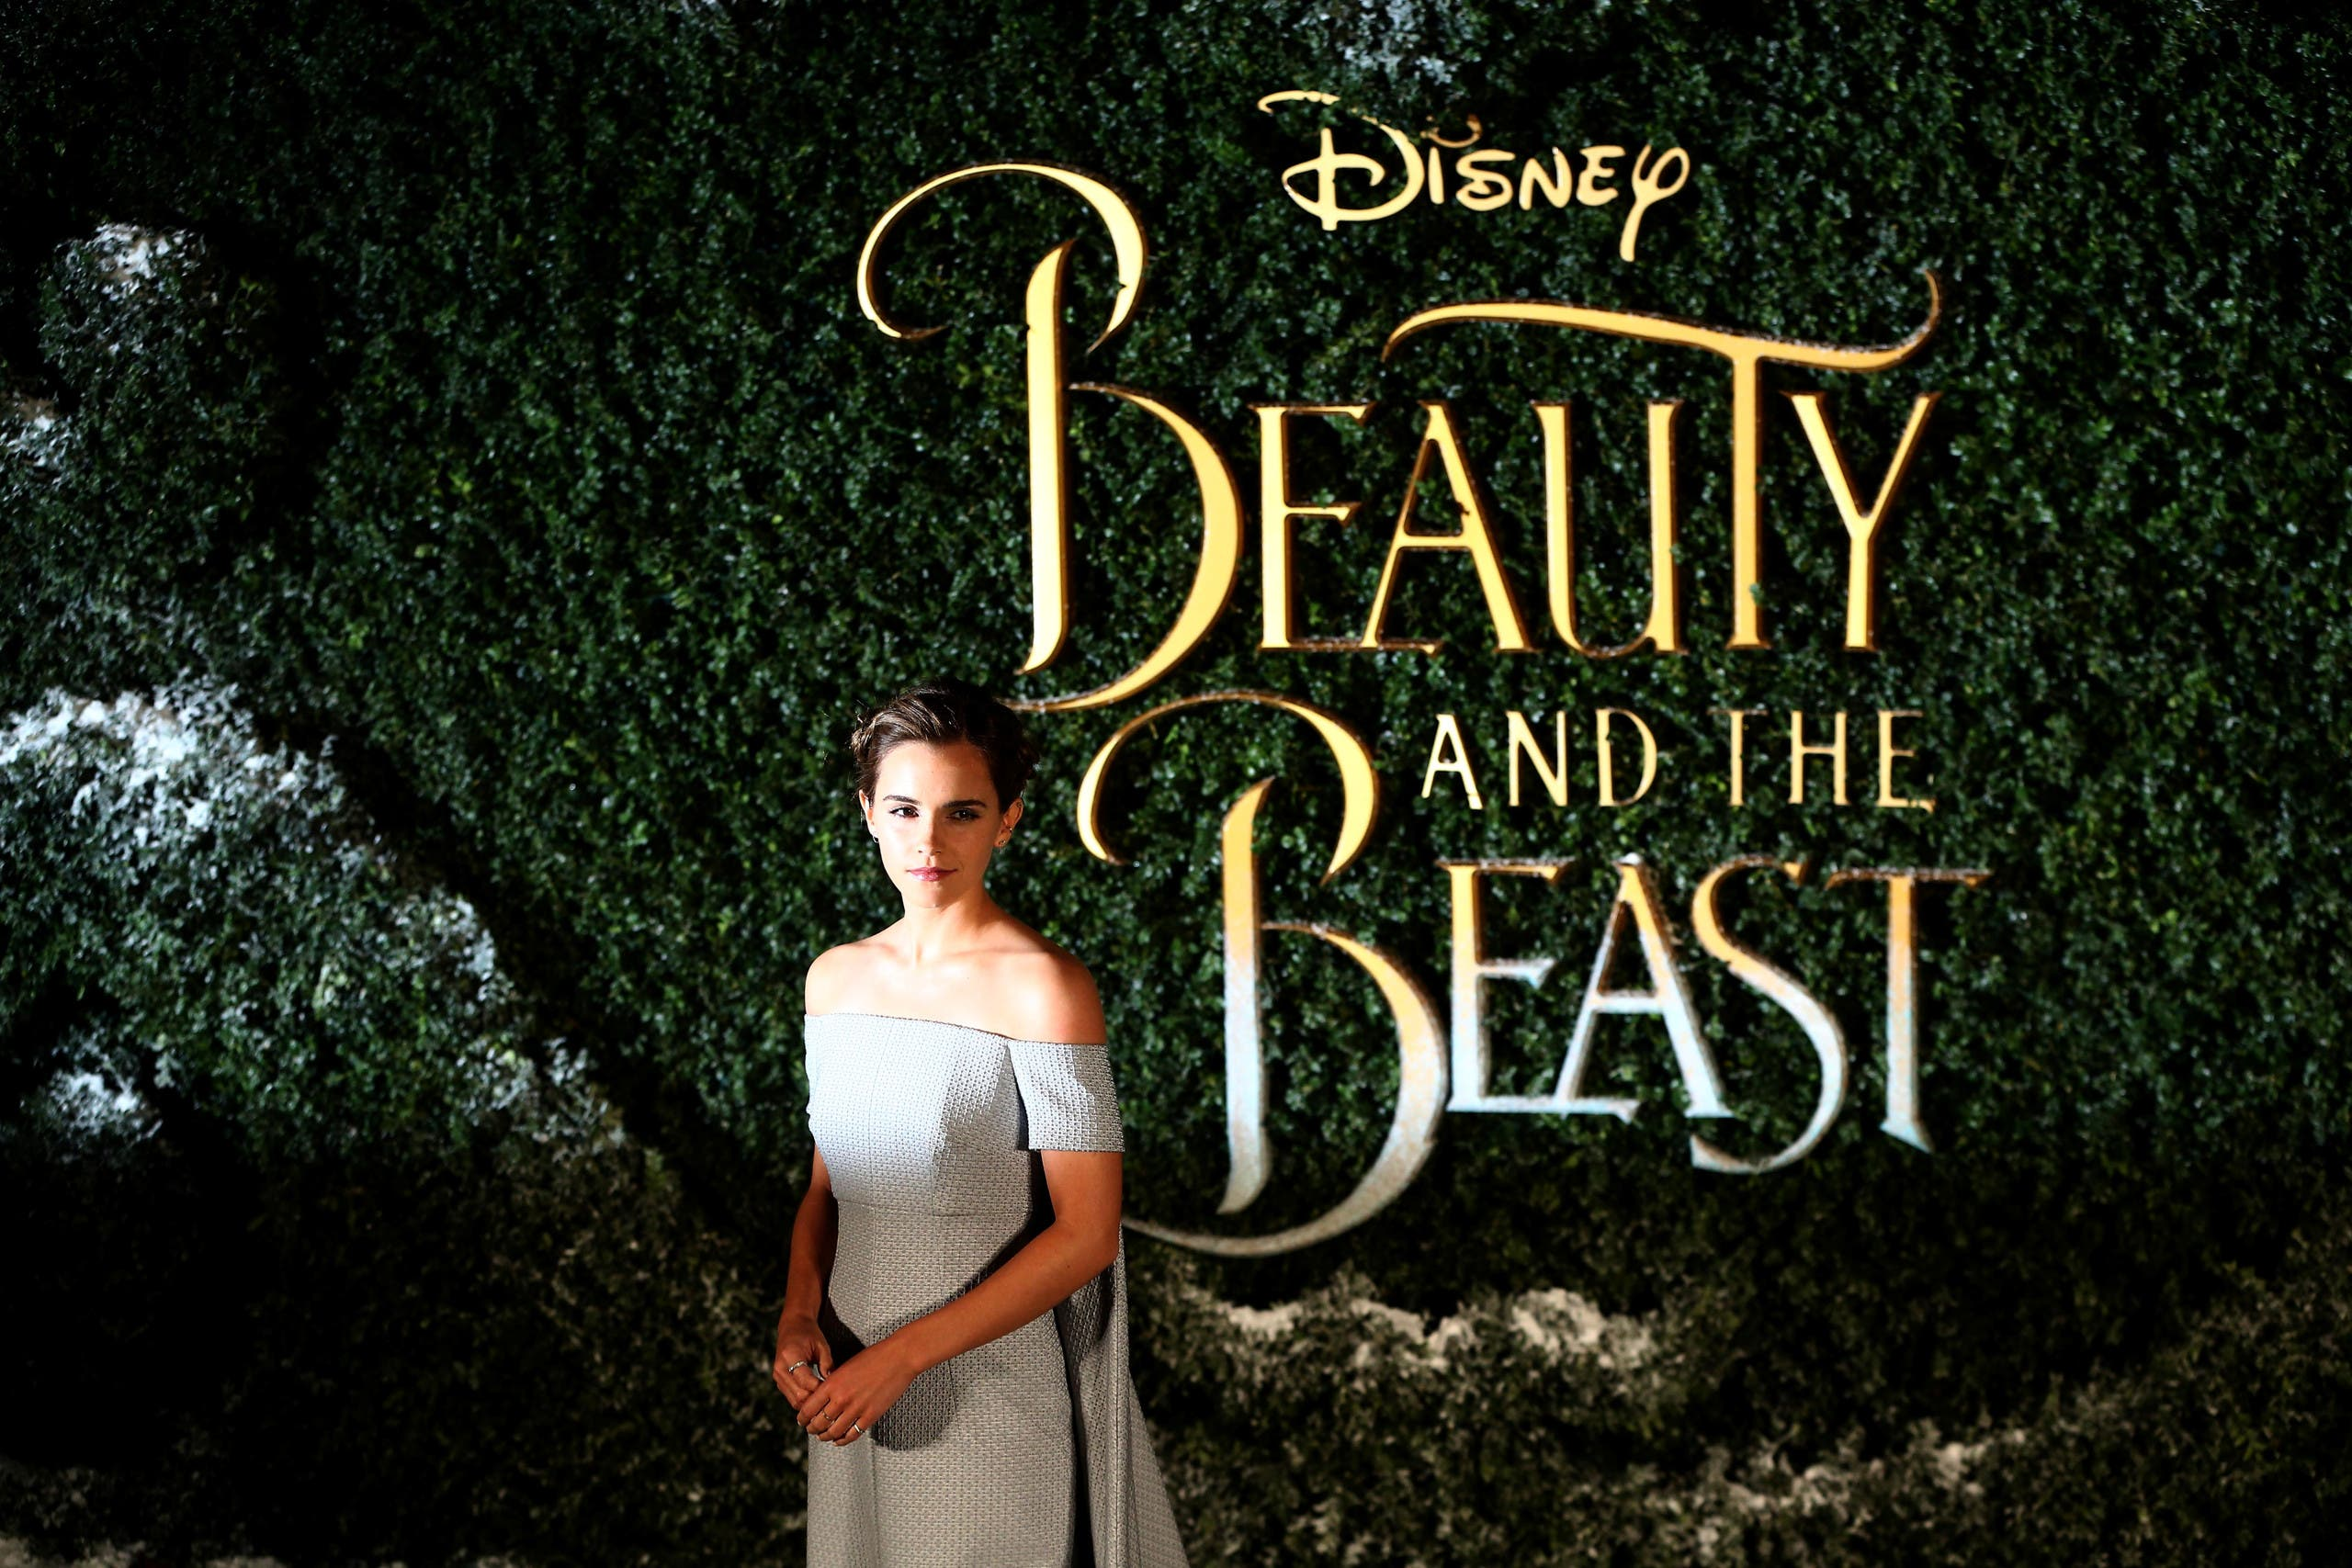 Actress Emma Watson star of 'Beauty and the Beast'. (Reuters)